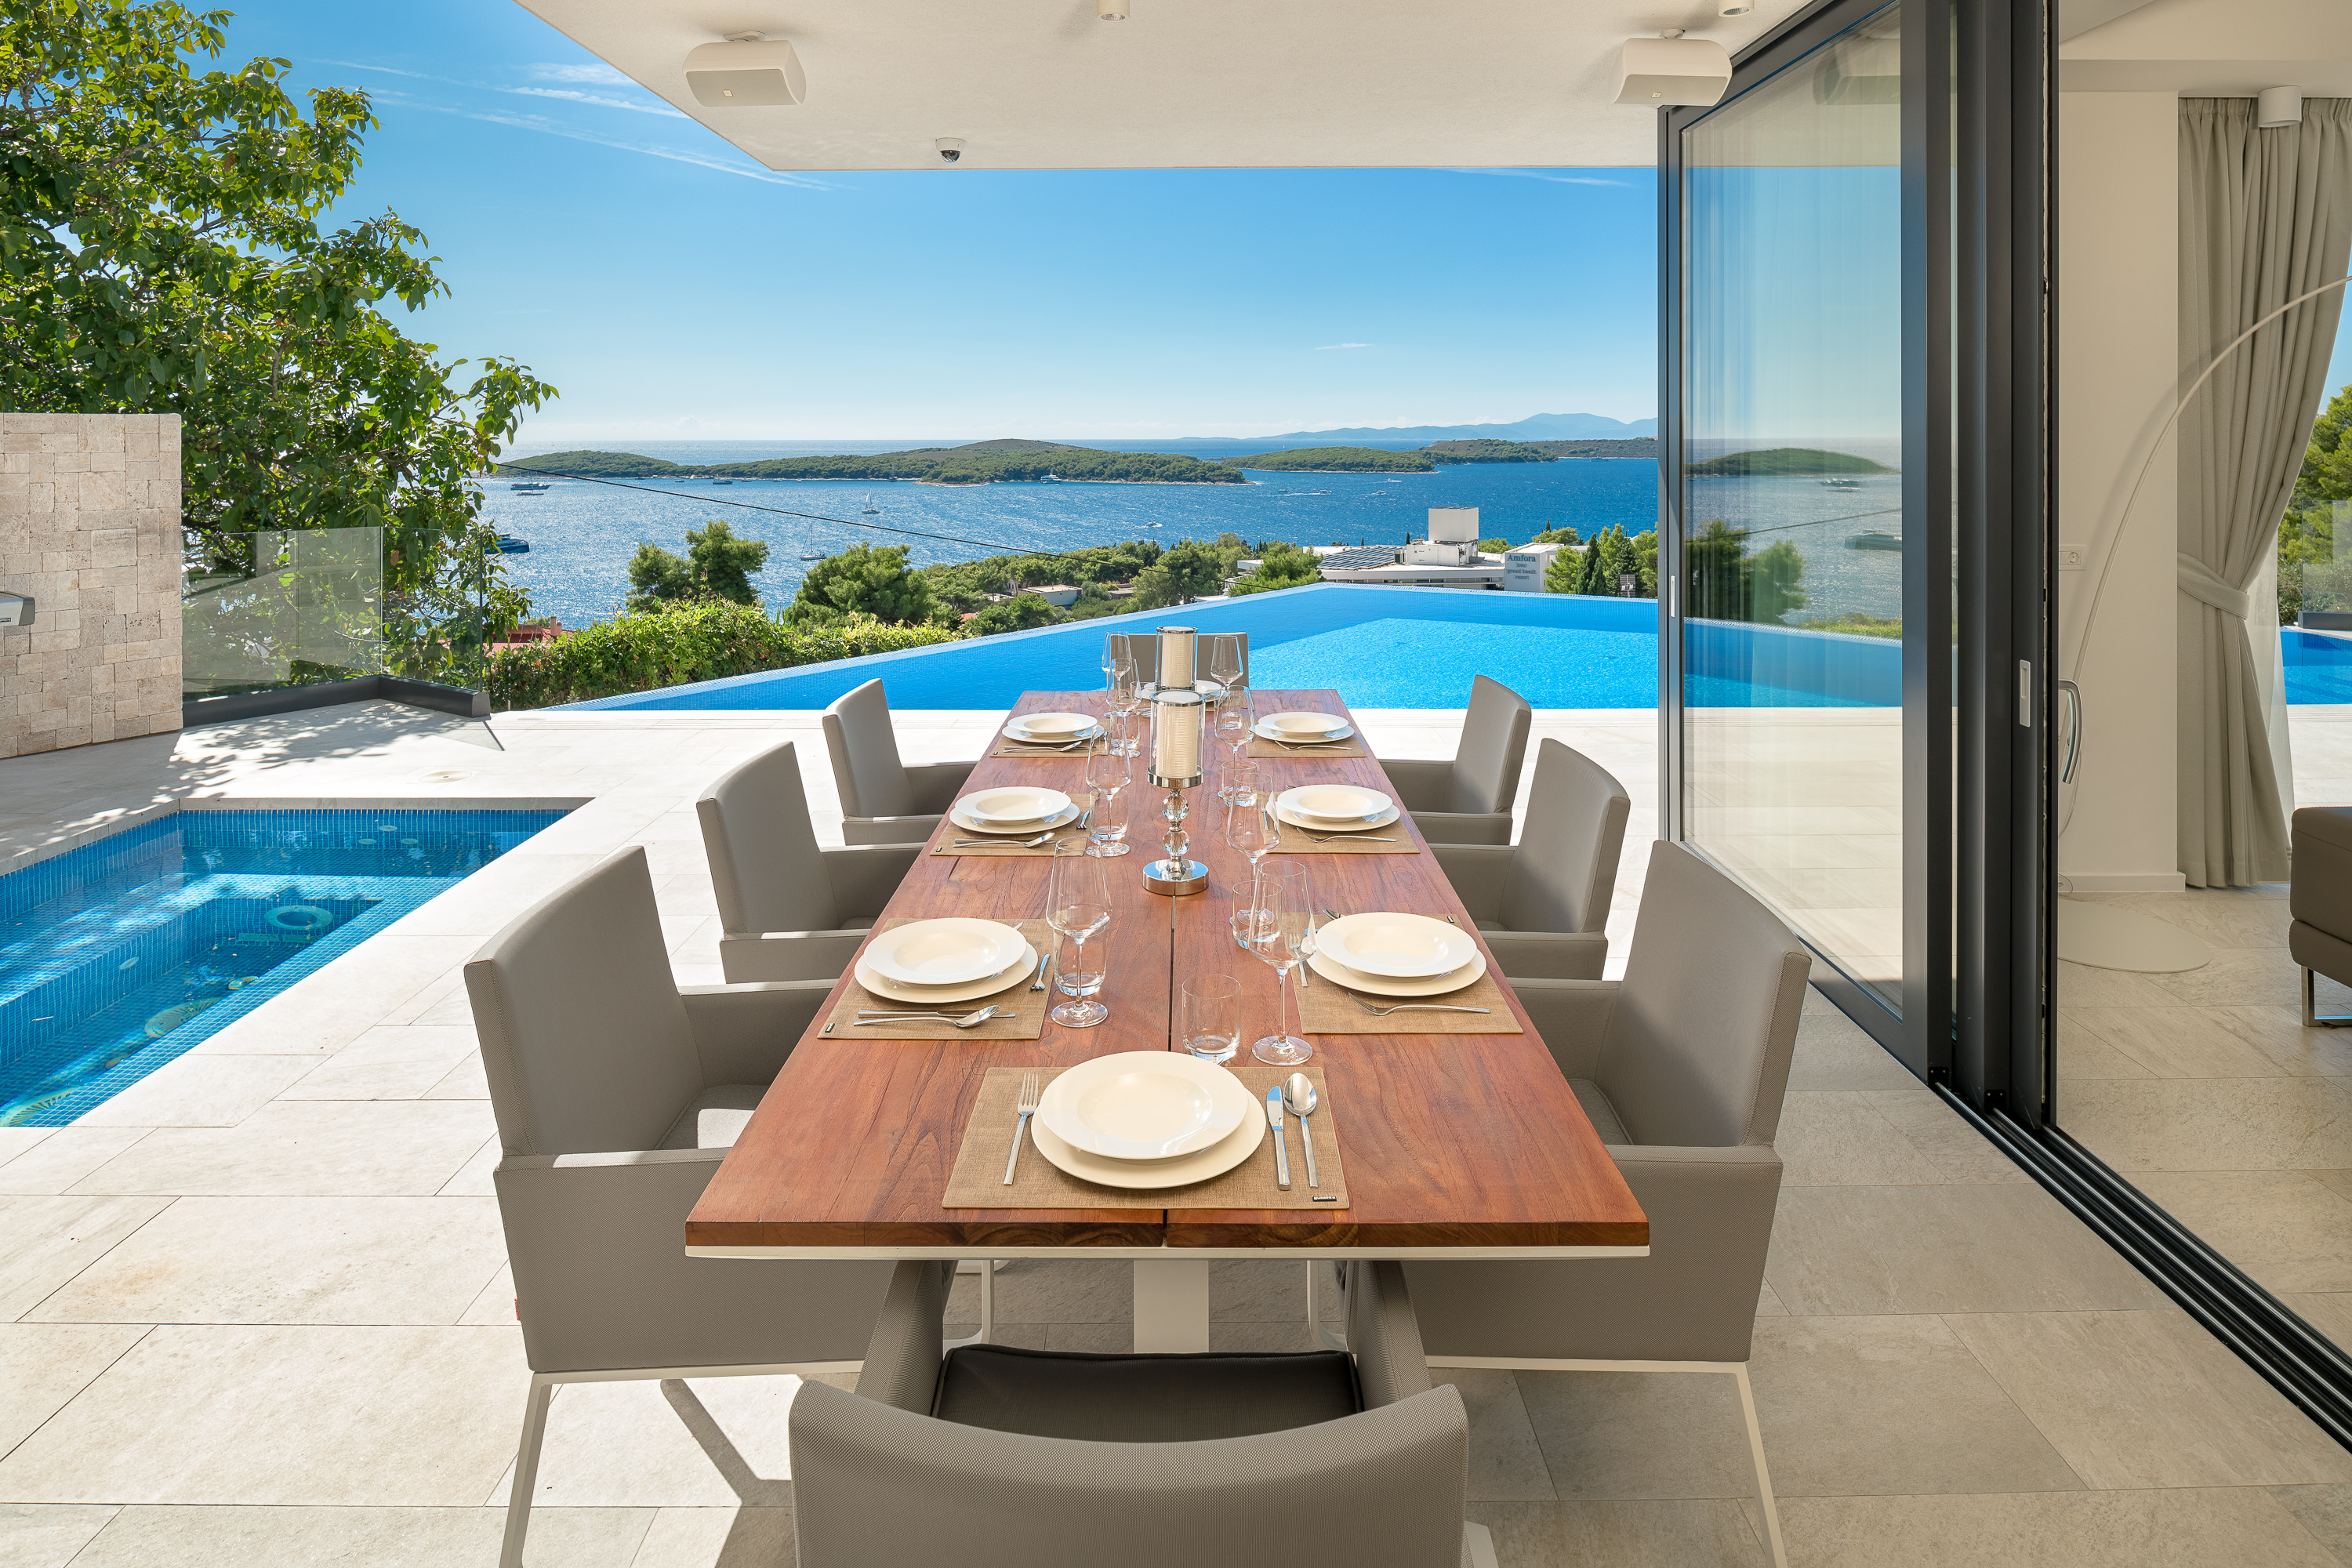 Alfresco dining area, jacuzzi, infinity pool with sea views at Luxury Villa Princess of Hvar with Infinity Pool